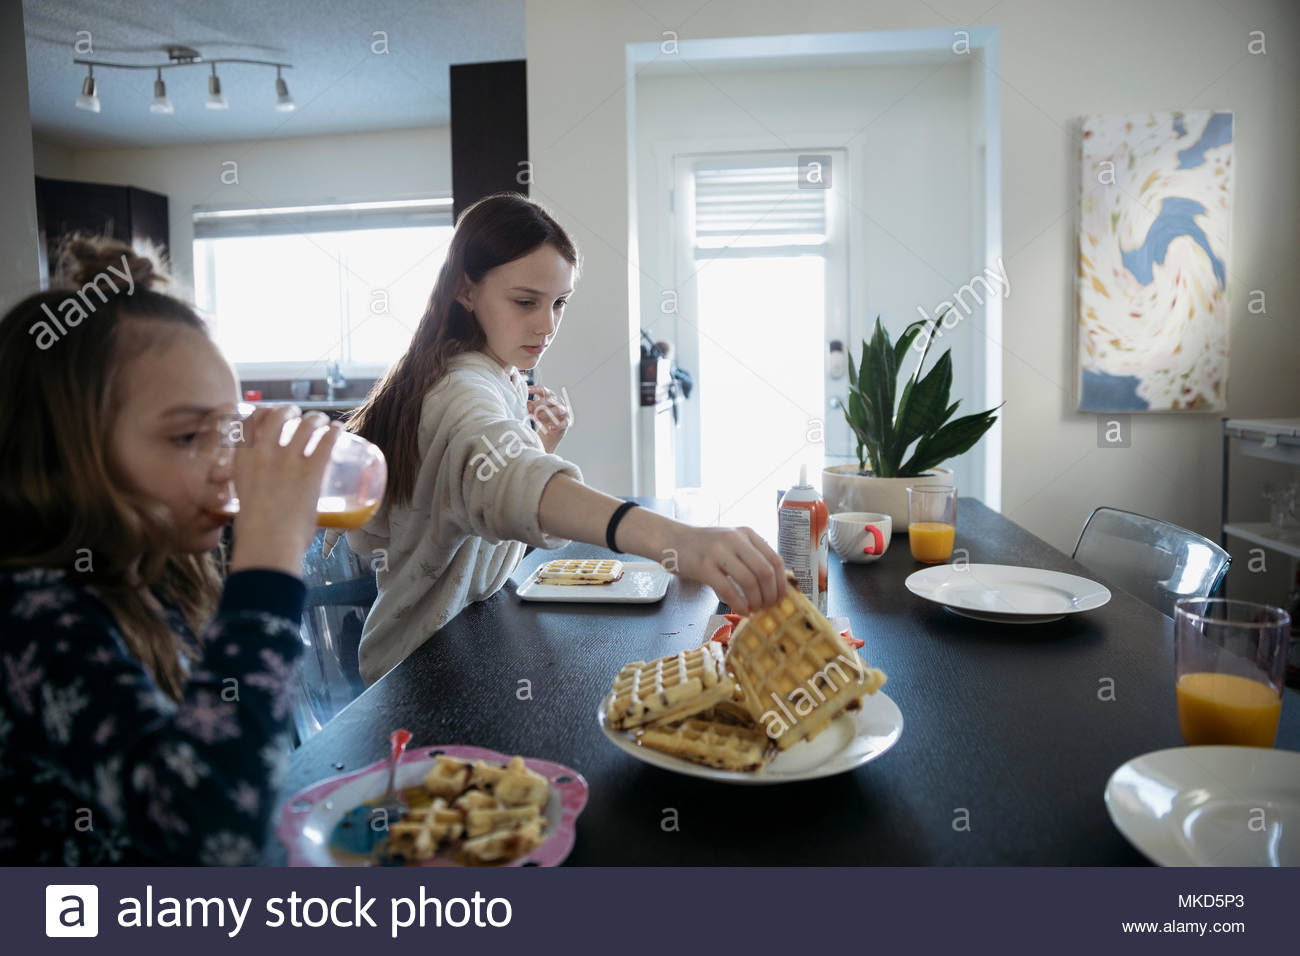 Girls eating waffles at dining table - Stock Image